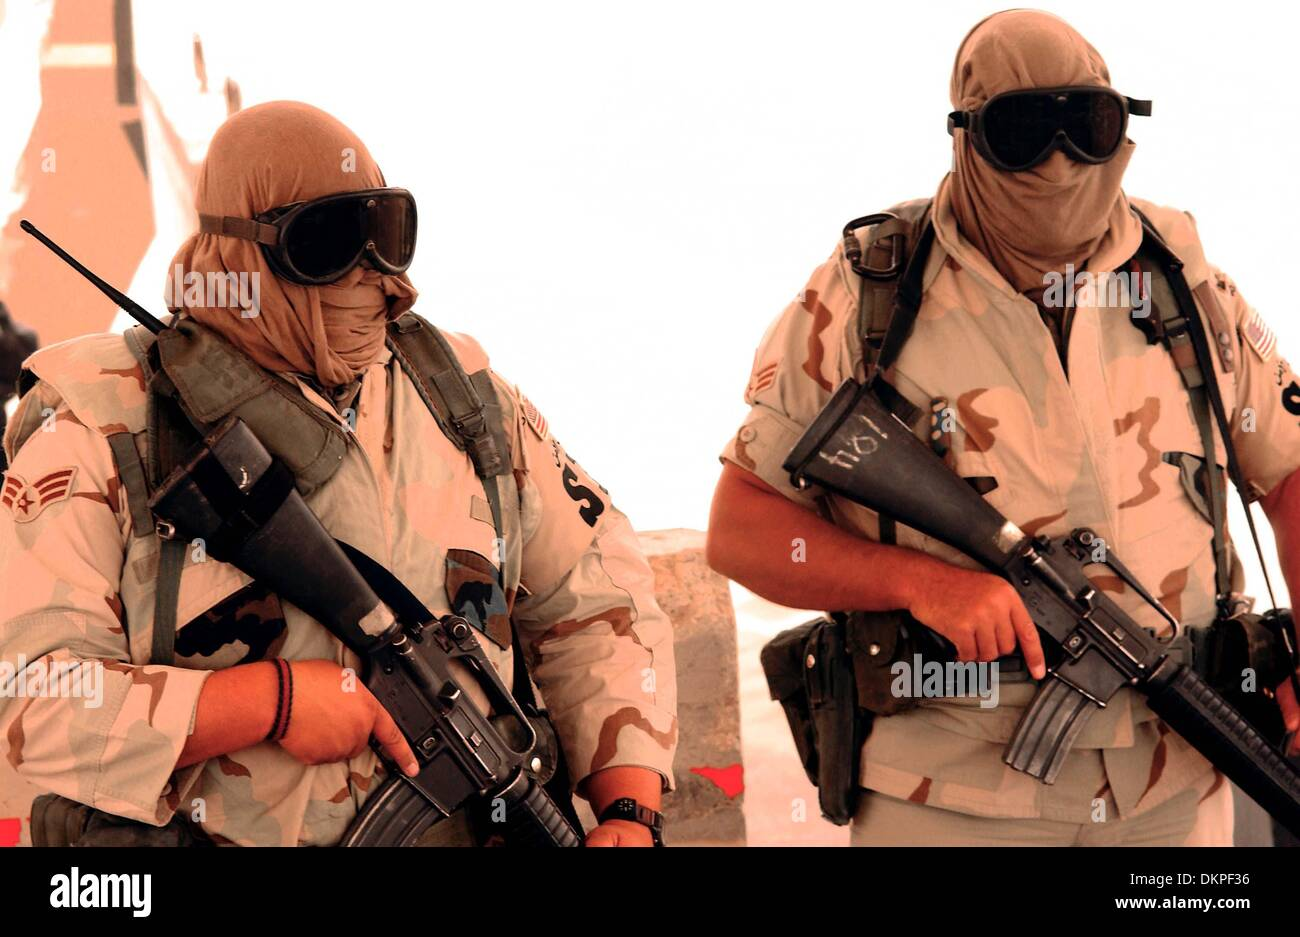 Nov  23, 2002 - Members of the 363rd Expeditionary Security Forces